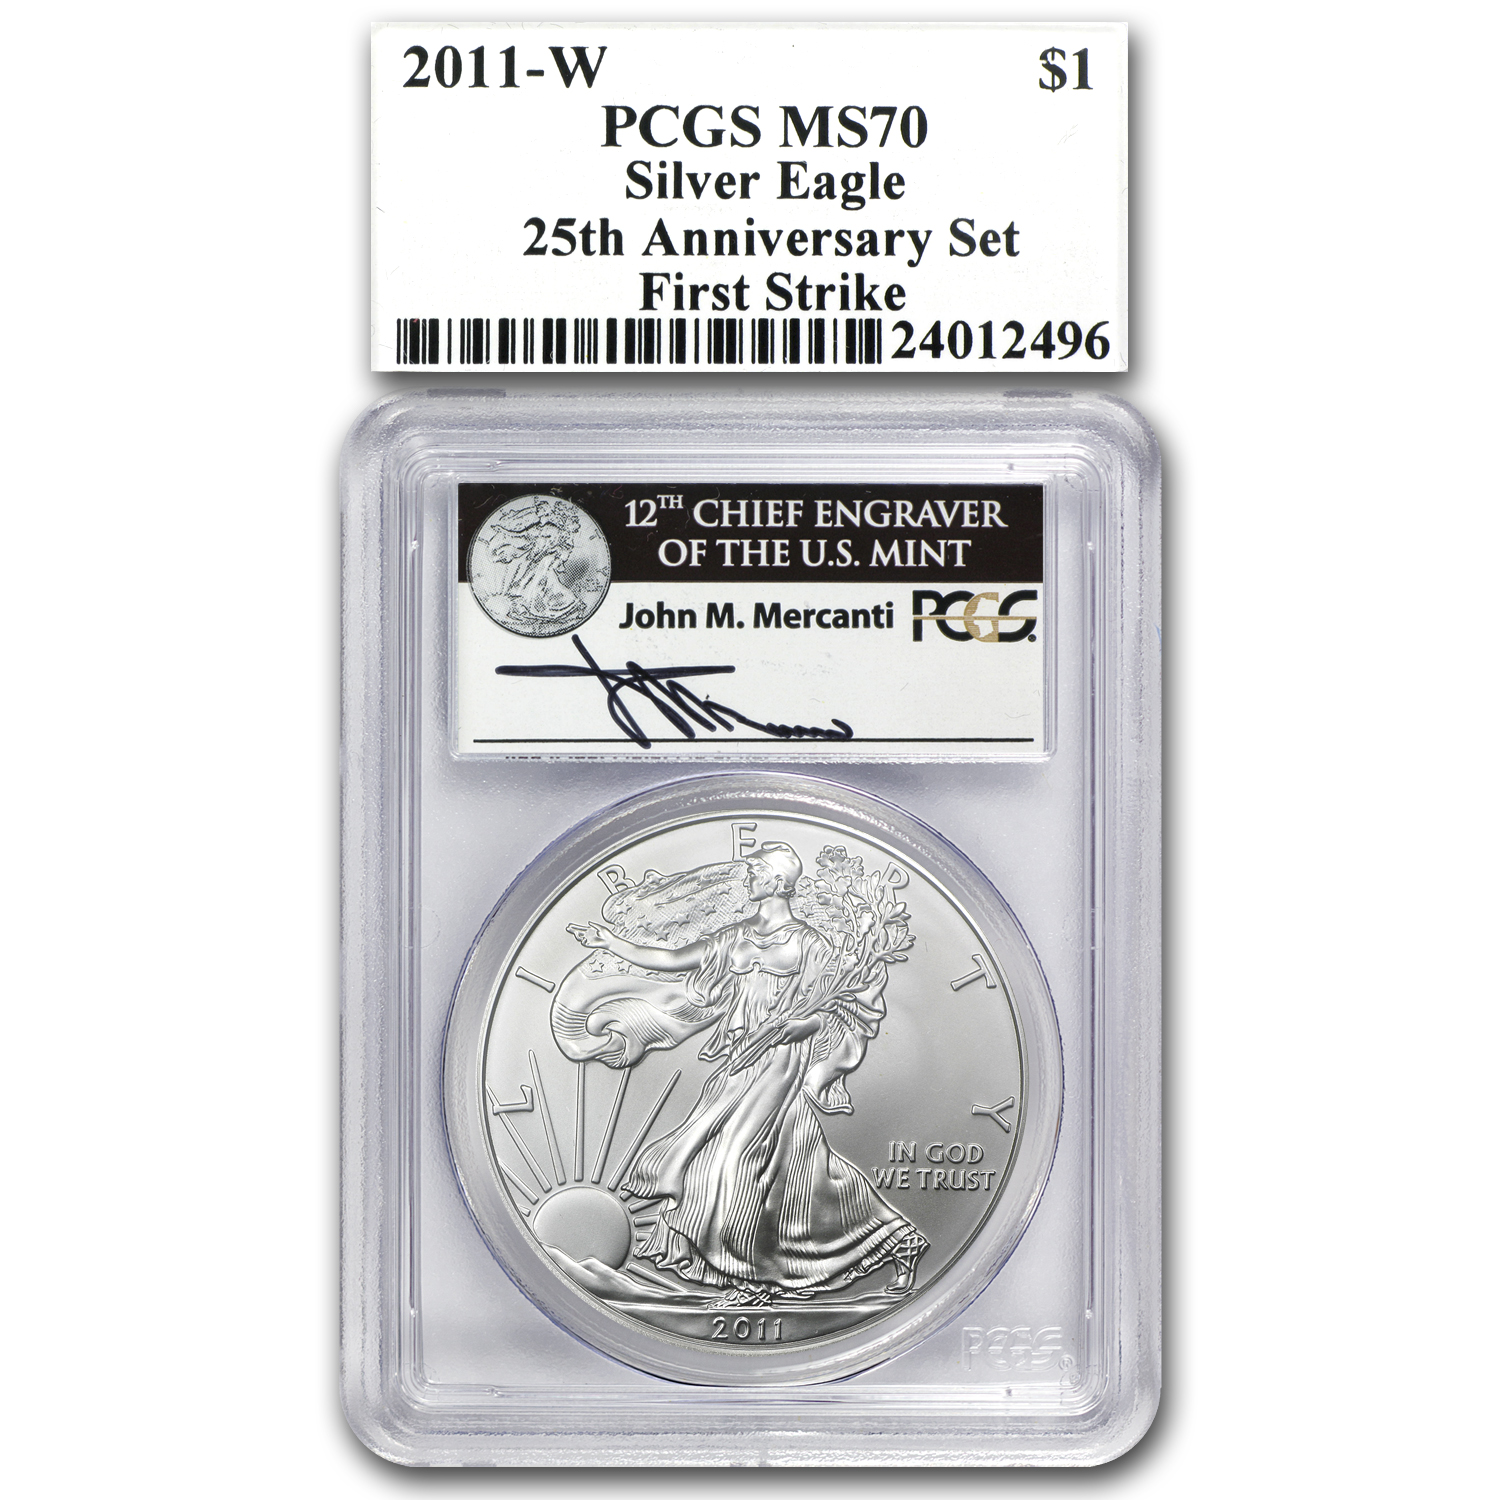 2011 5-Coin Silver Eagle Set MS/PR-70 PCGS (FS, Mercanti, 25th)